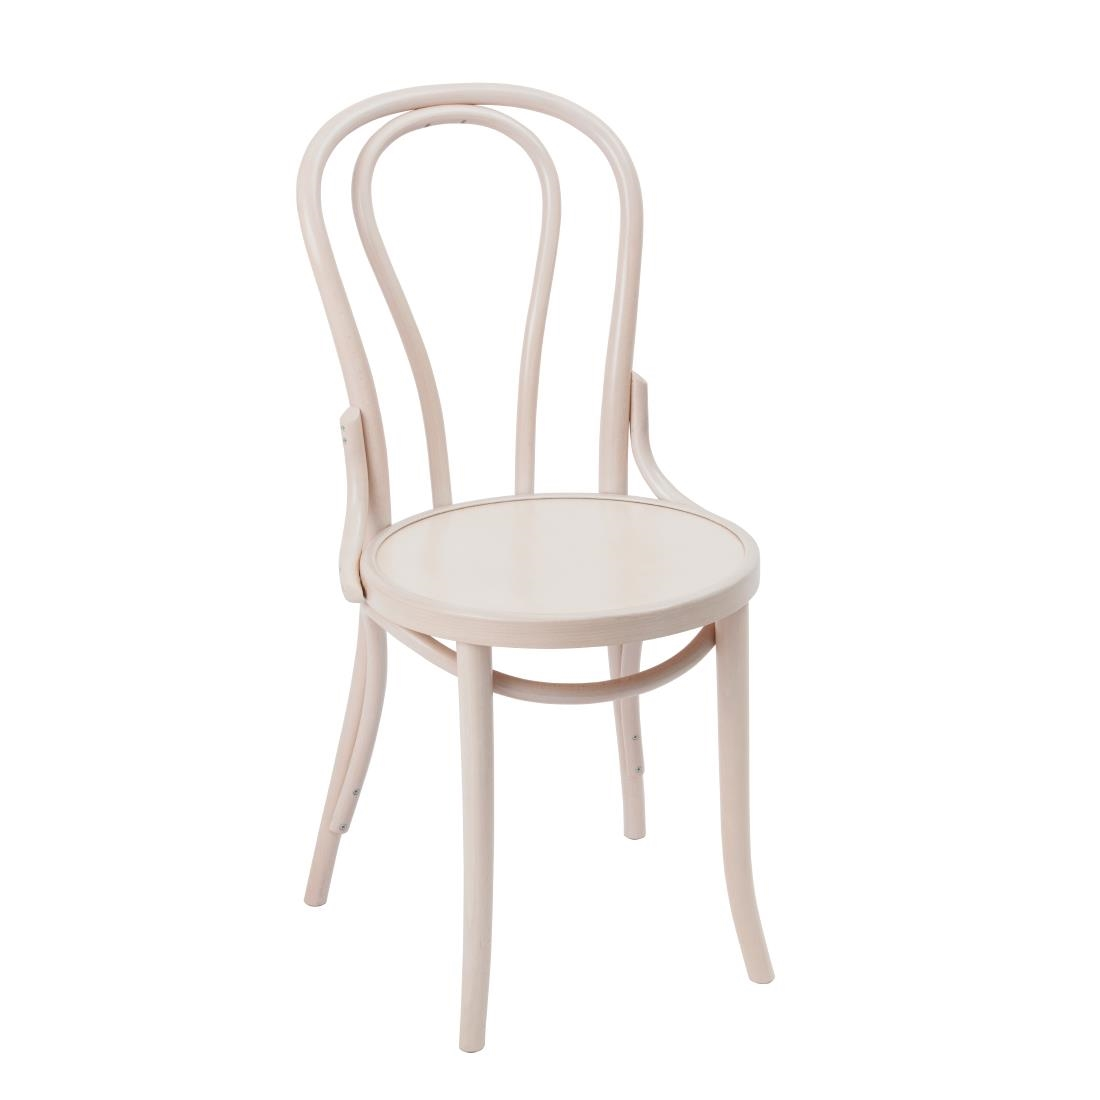 Bentwood chairs white -  Fameg Bentwood Bistro Sidechair White Pack Of 2